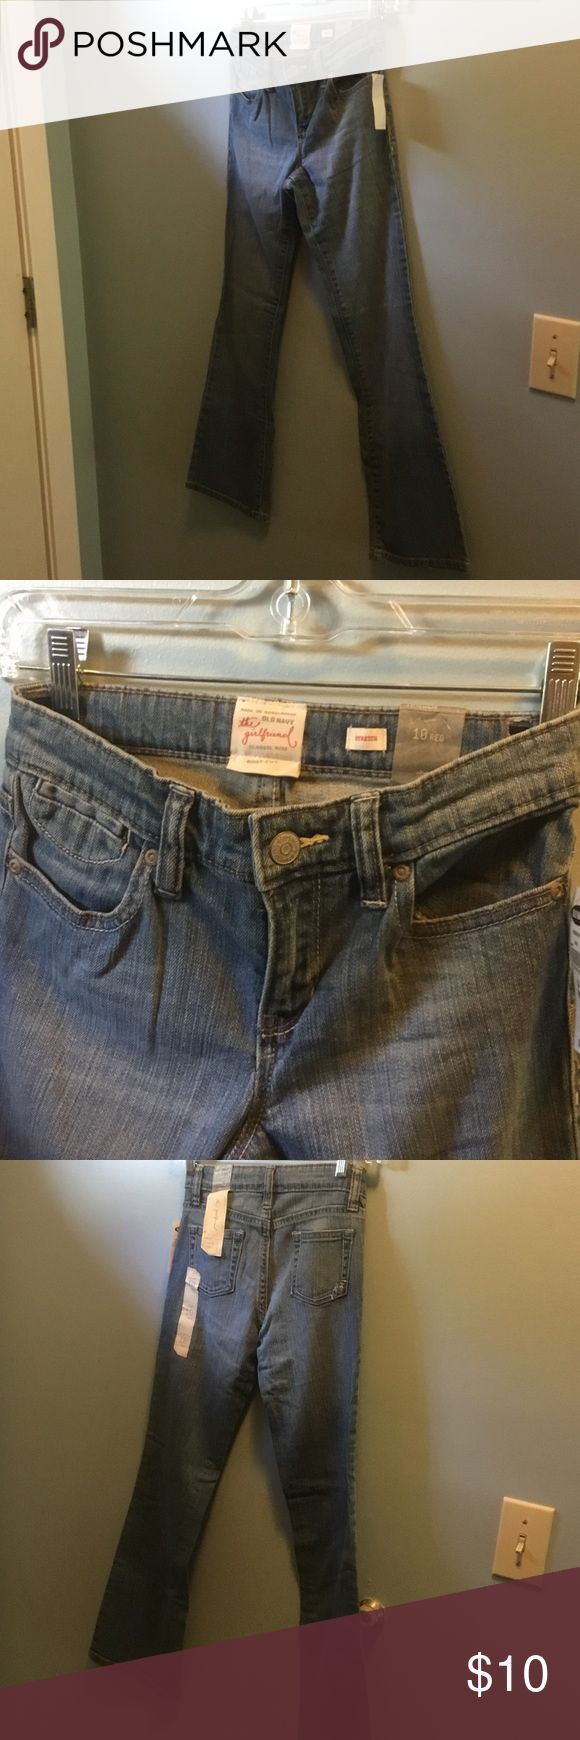 OLD NAVY girls jeans size 10reg. NWT Old navy the girlfriend classics rise boot-cut. Adjustable waist stretch.  Smoke and pet free home Old Navy Bottoms Jeans